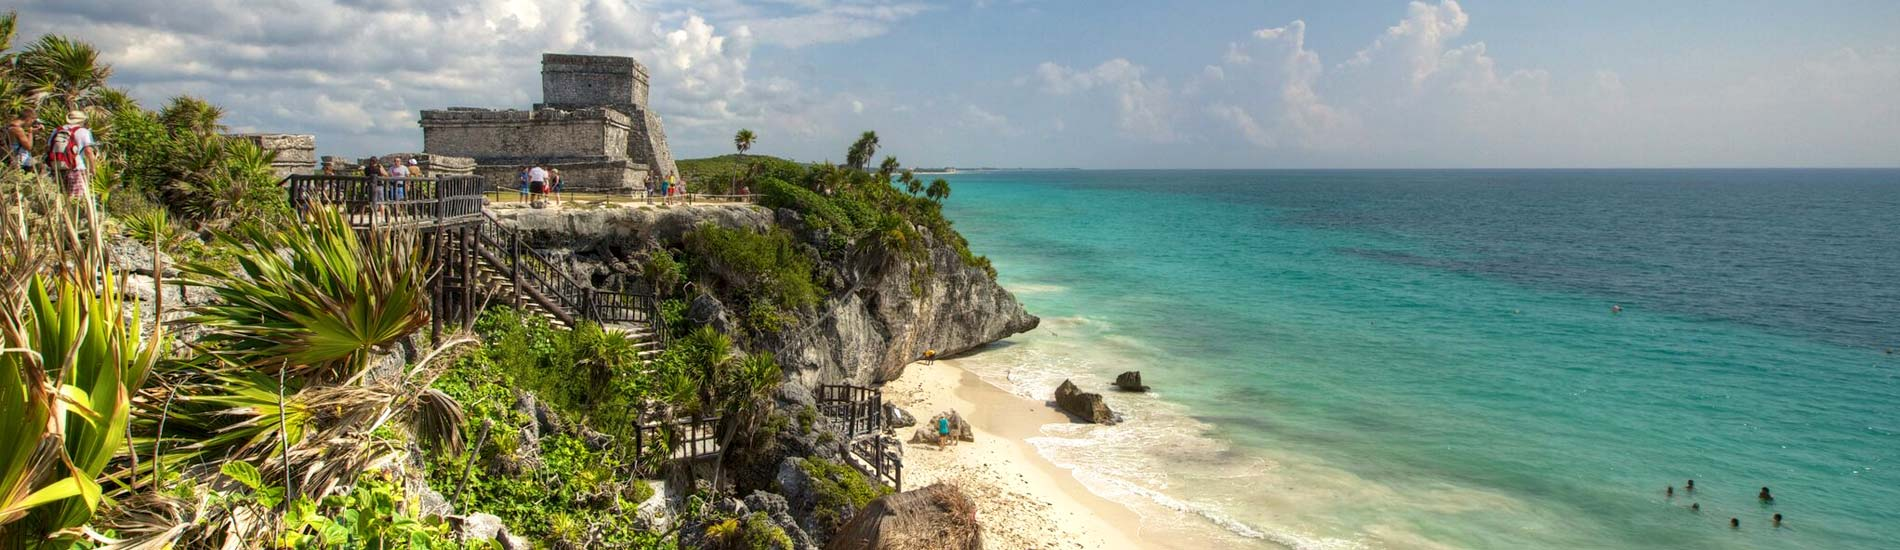 How to go to Tulum and how far is the tulum from Cancun